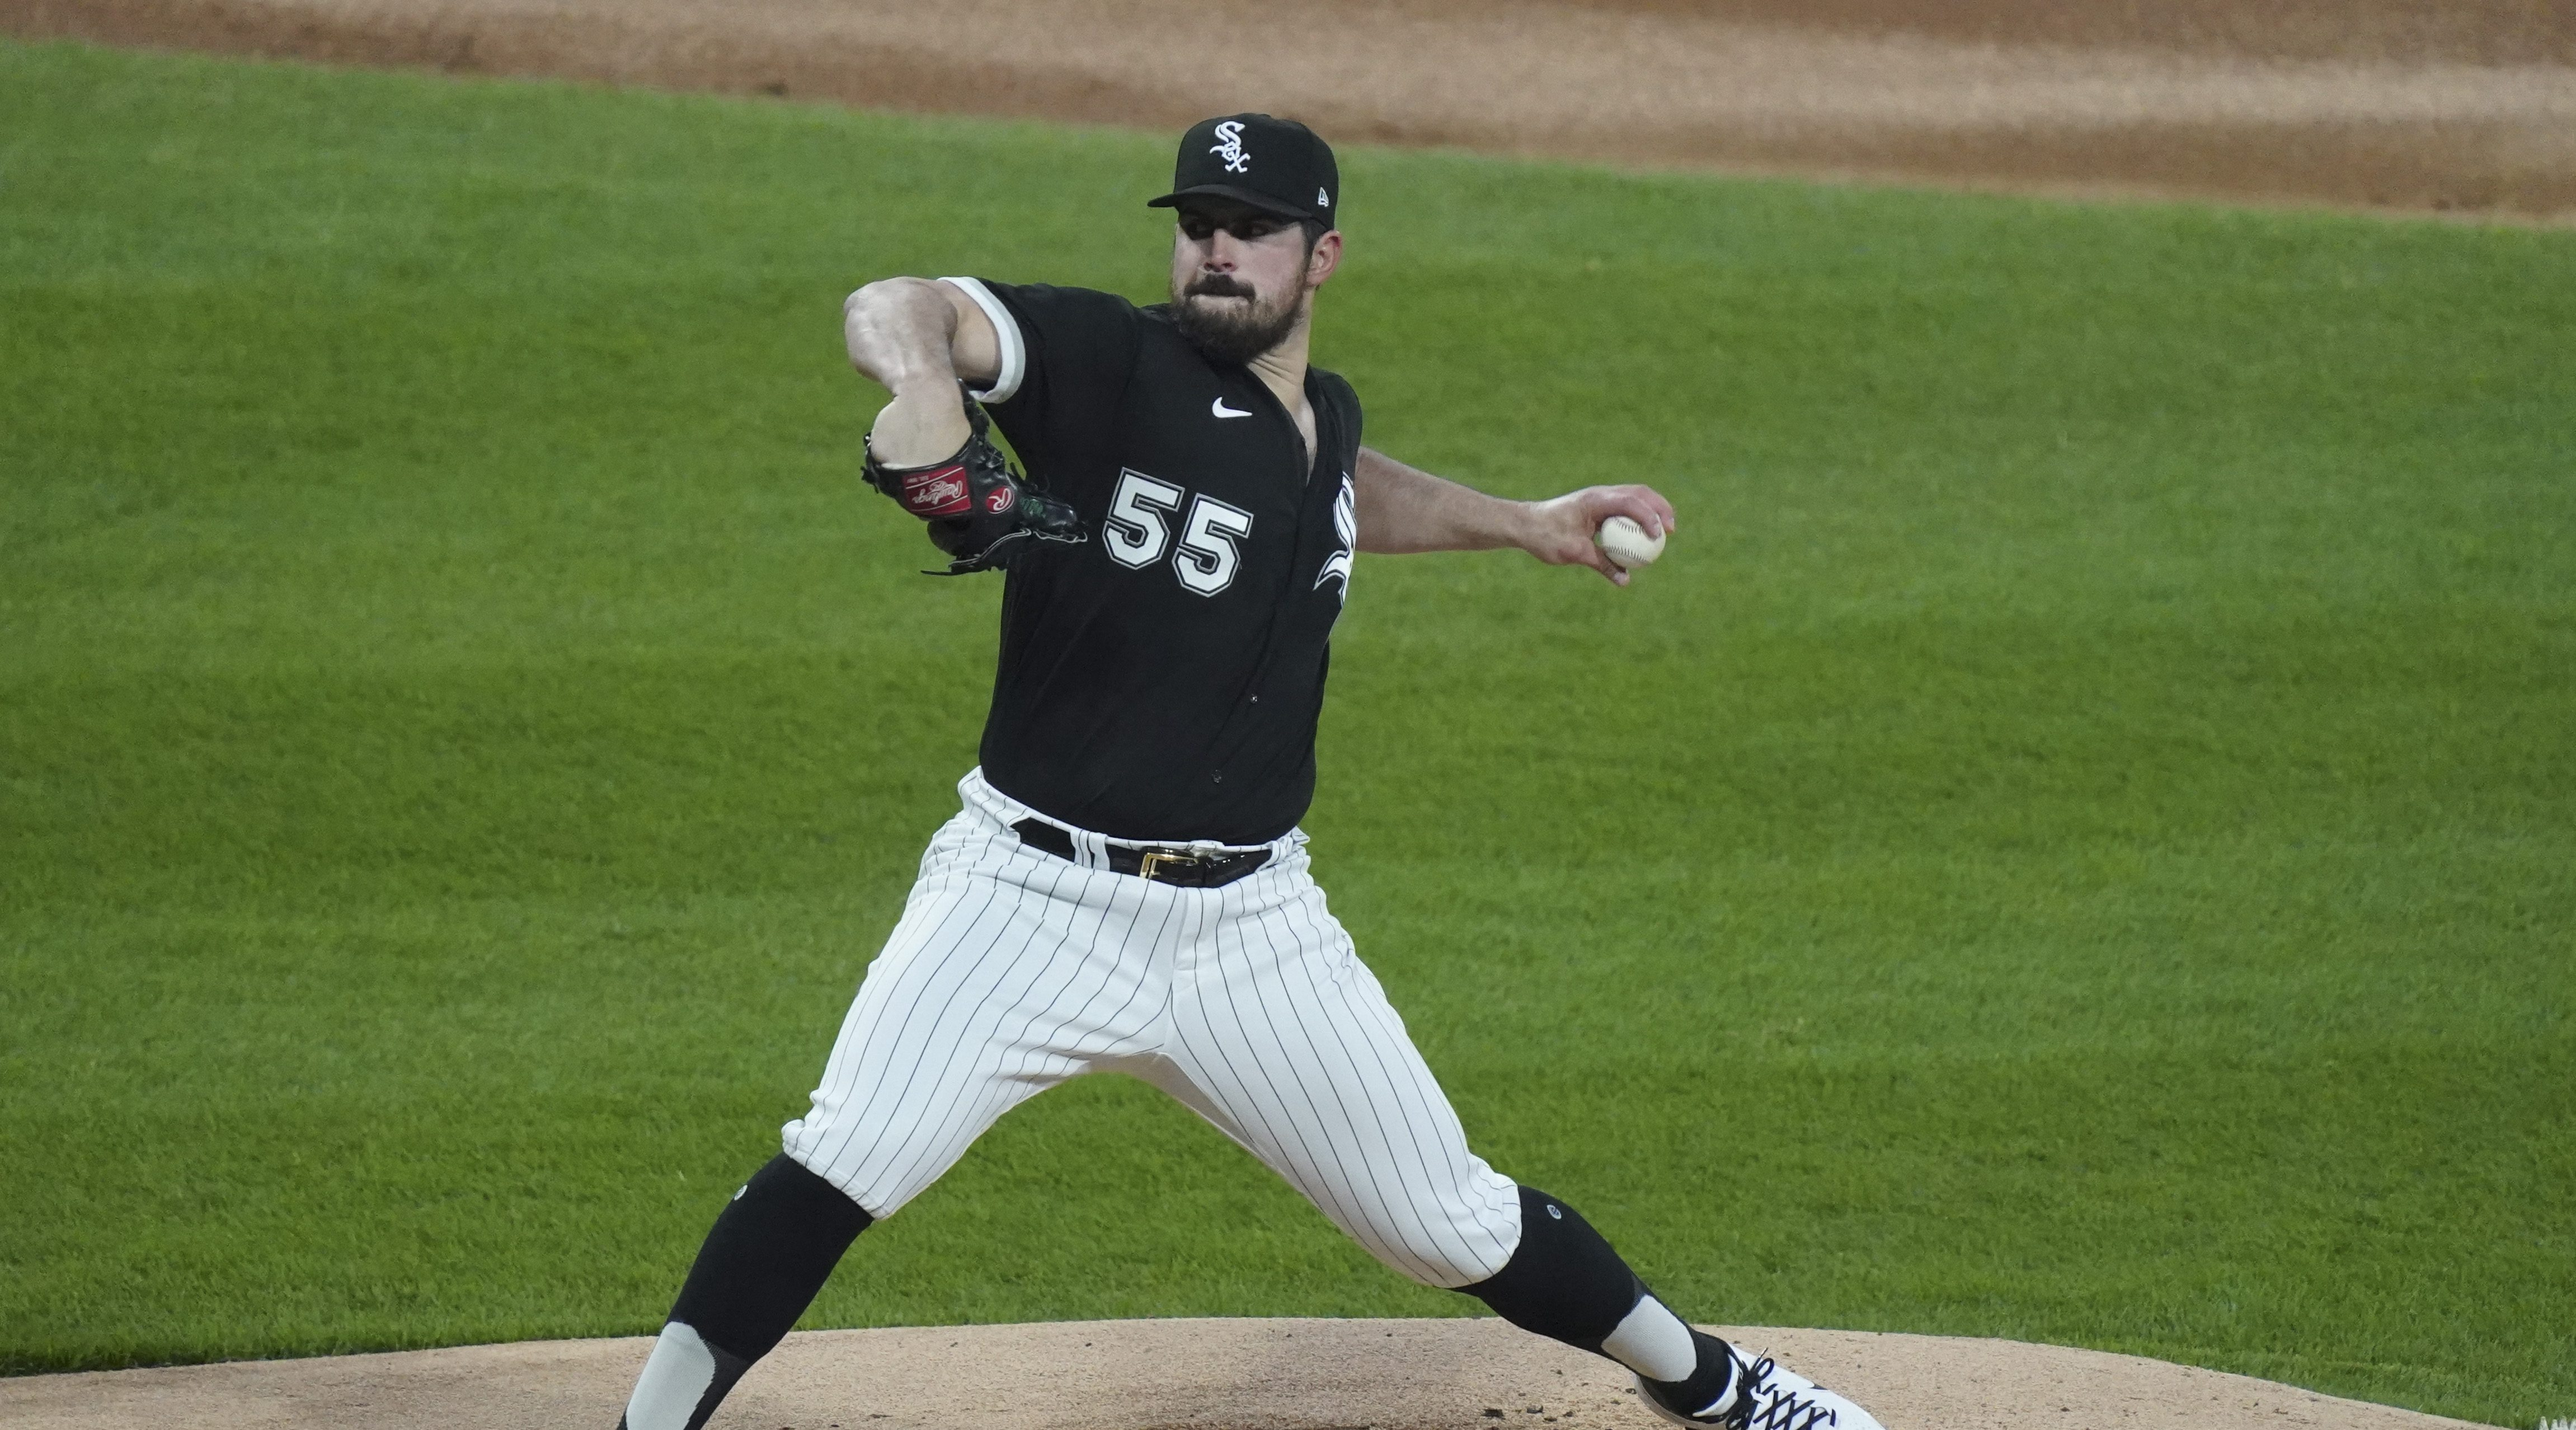 Carlos Rodon stretches through his pitching motion toward home.